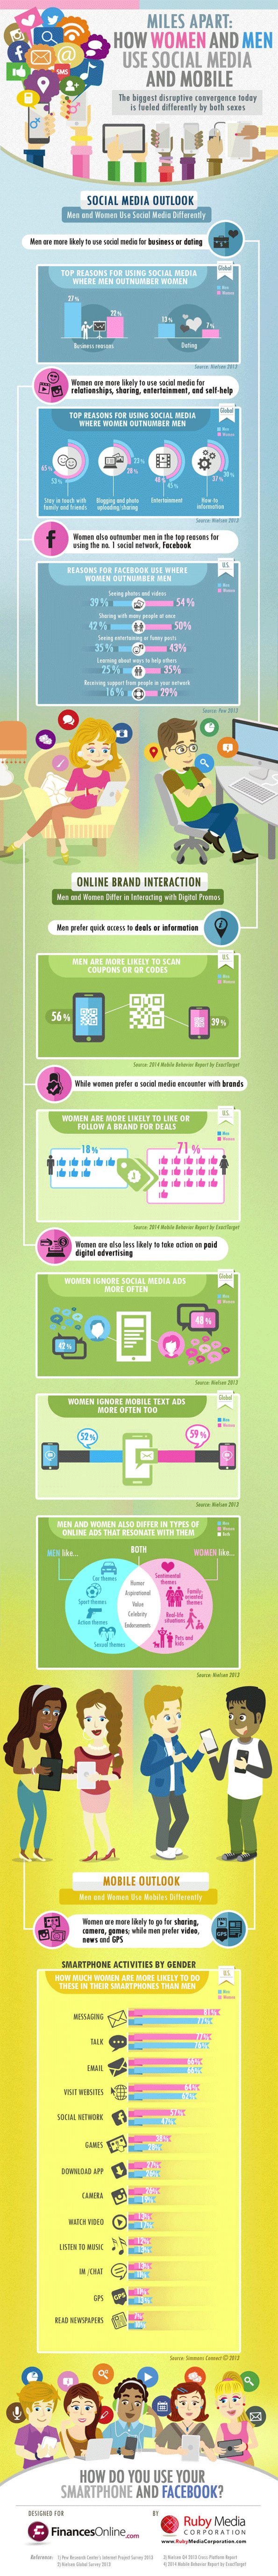 Social Media and Mobile Use by Gender Infographic image